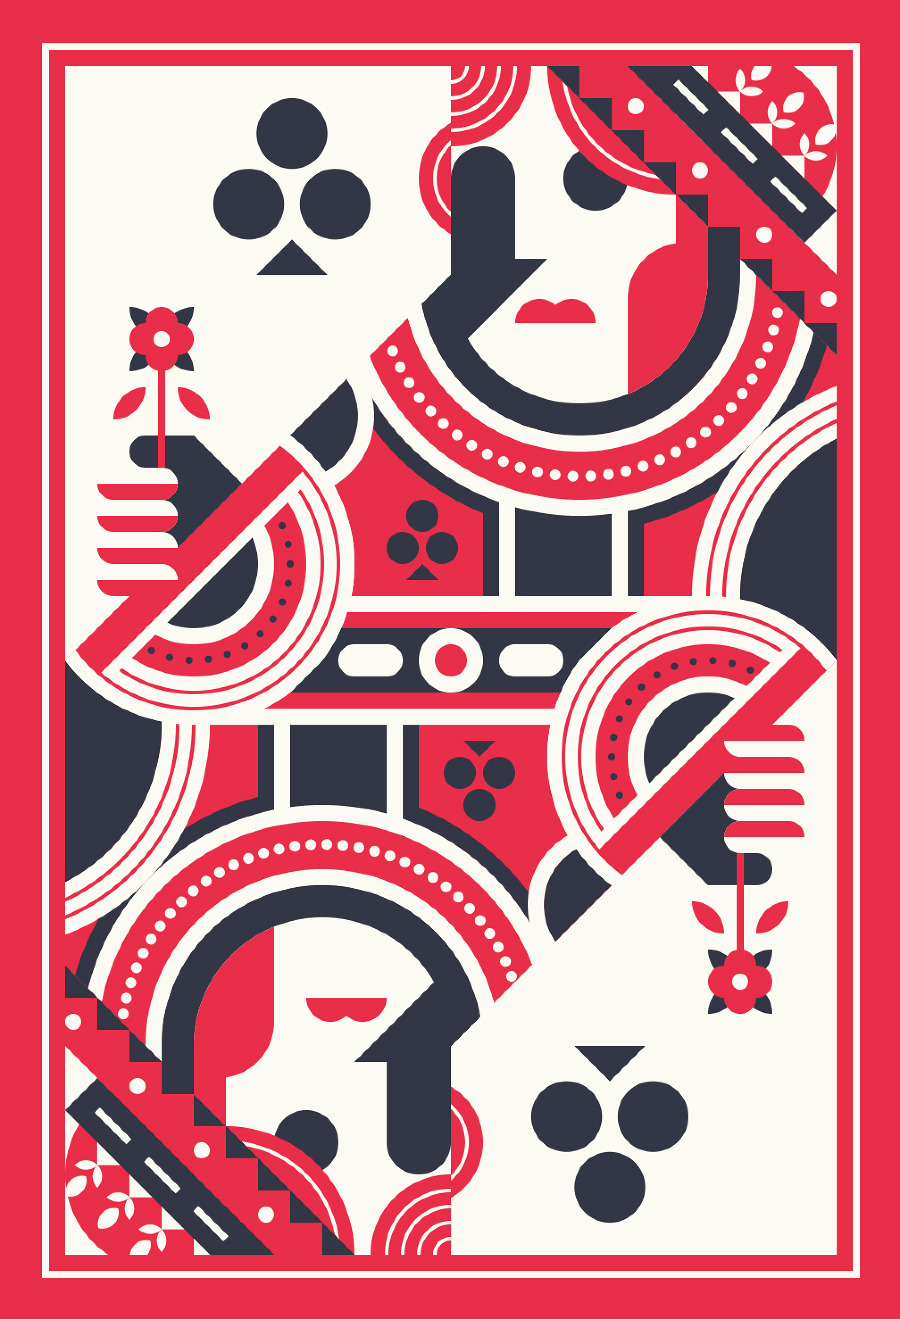 Playing Card Art: The Queen of Clubs by Justin Mezzell ...